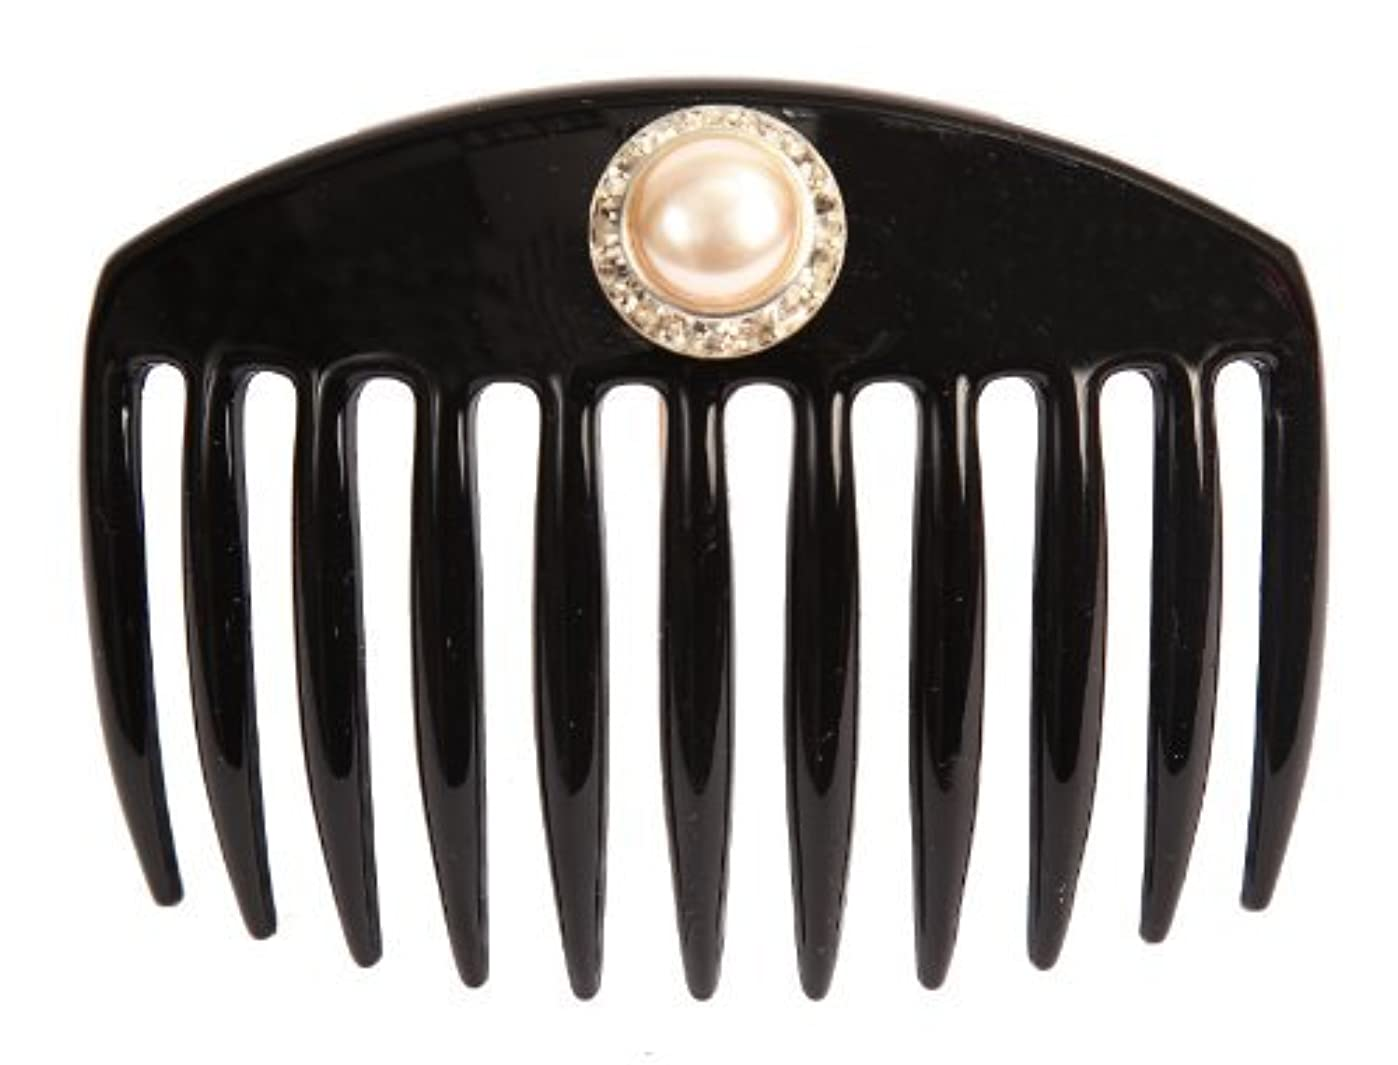 改革有害夢中Caravan Hand Decorated French Comb with Large Pearl and Swarovski Stones In Silver Setting, Black.65 Ounce [並行輸入品]